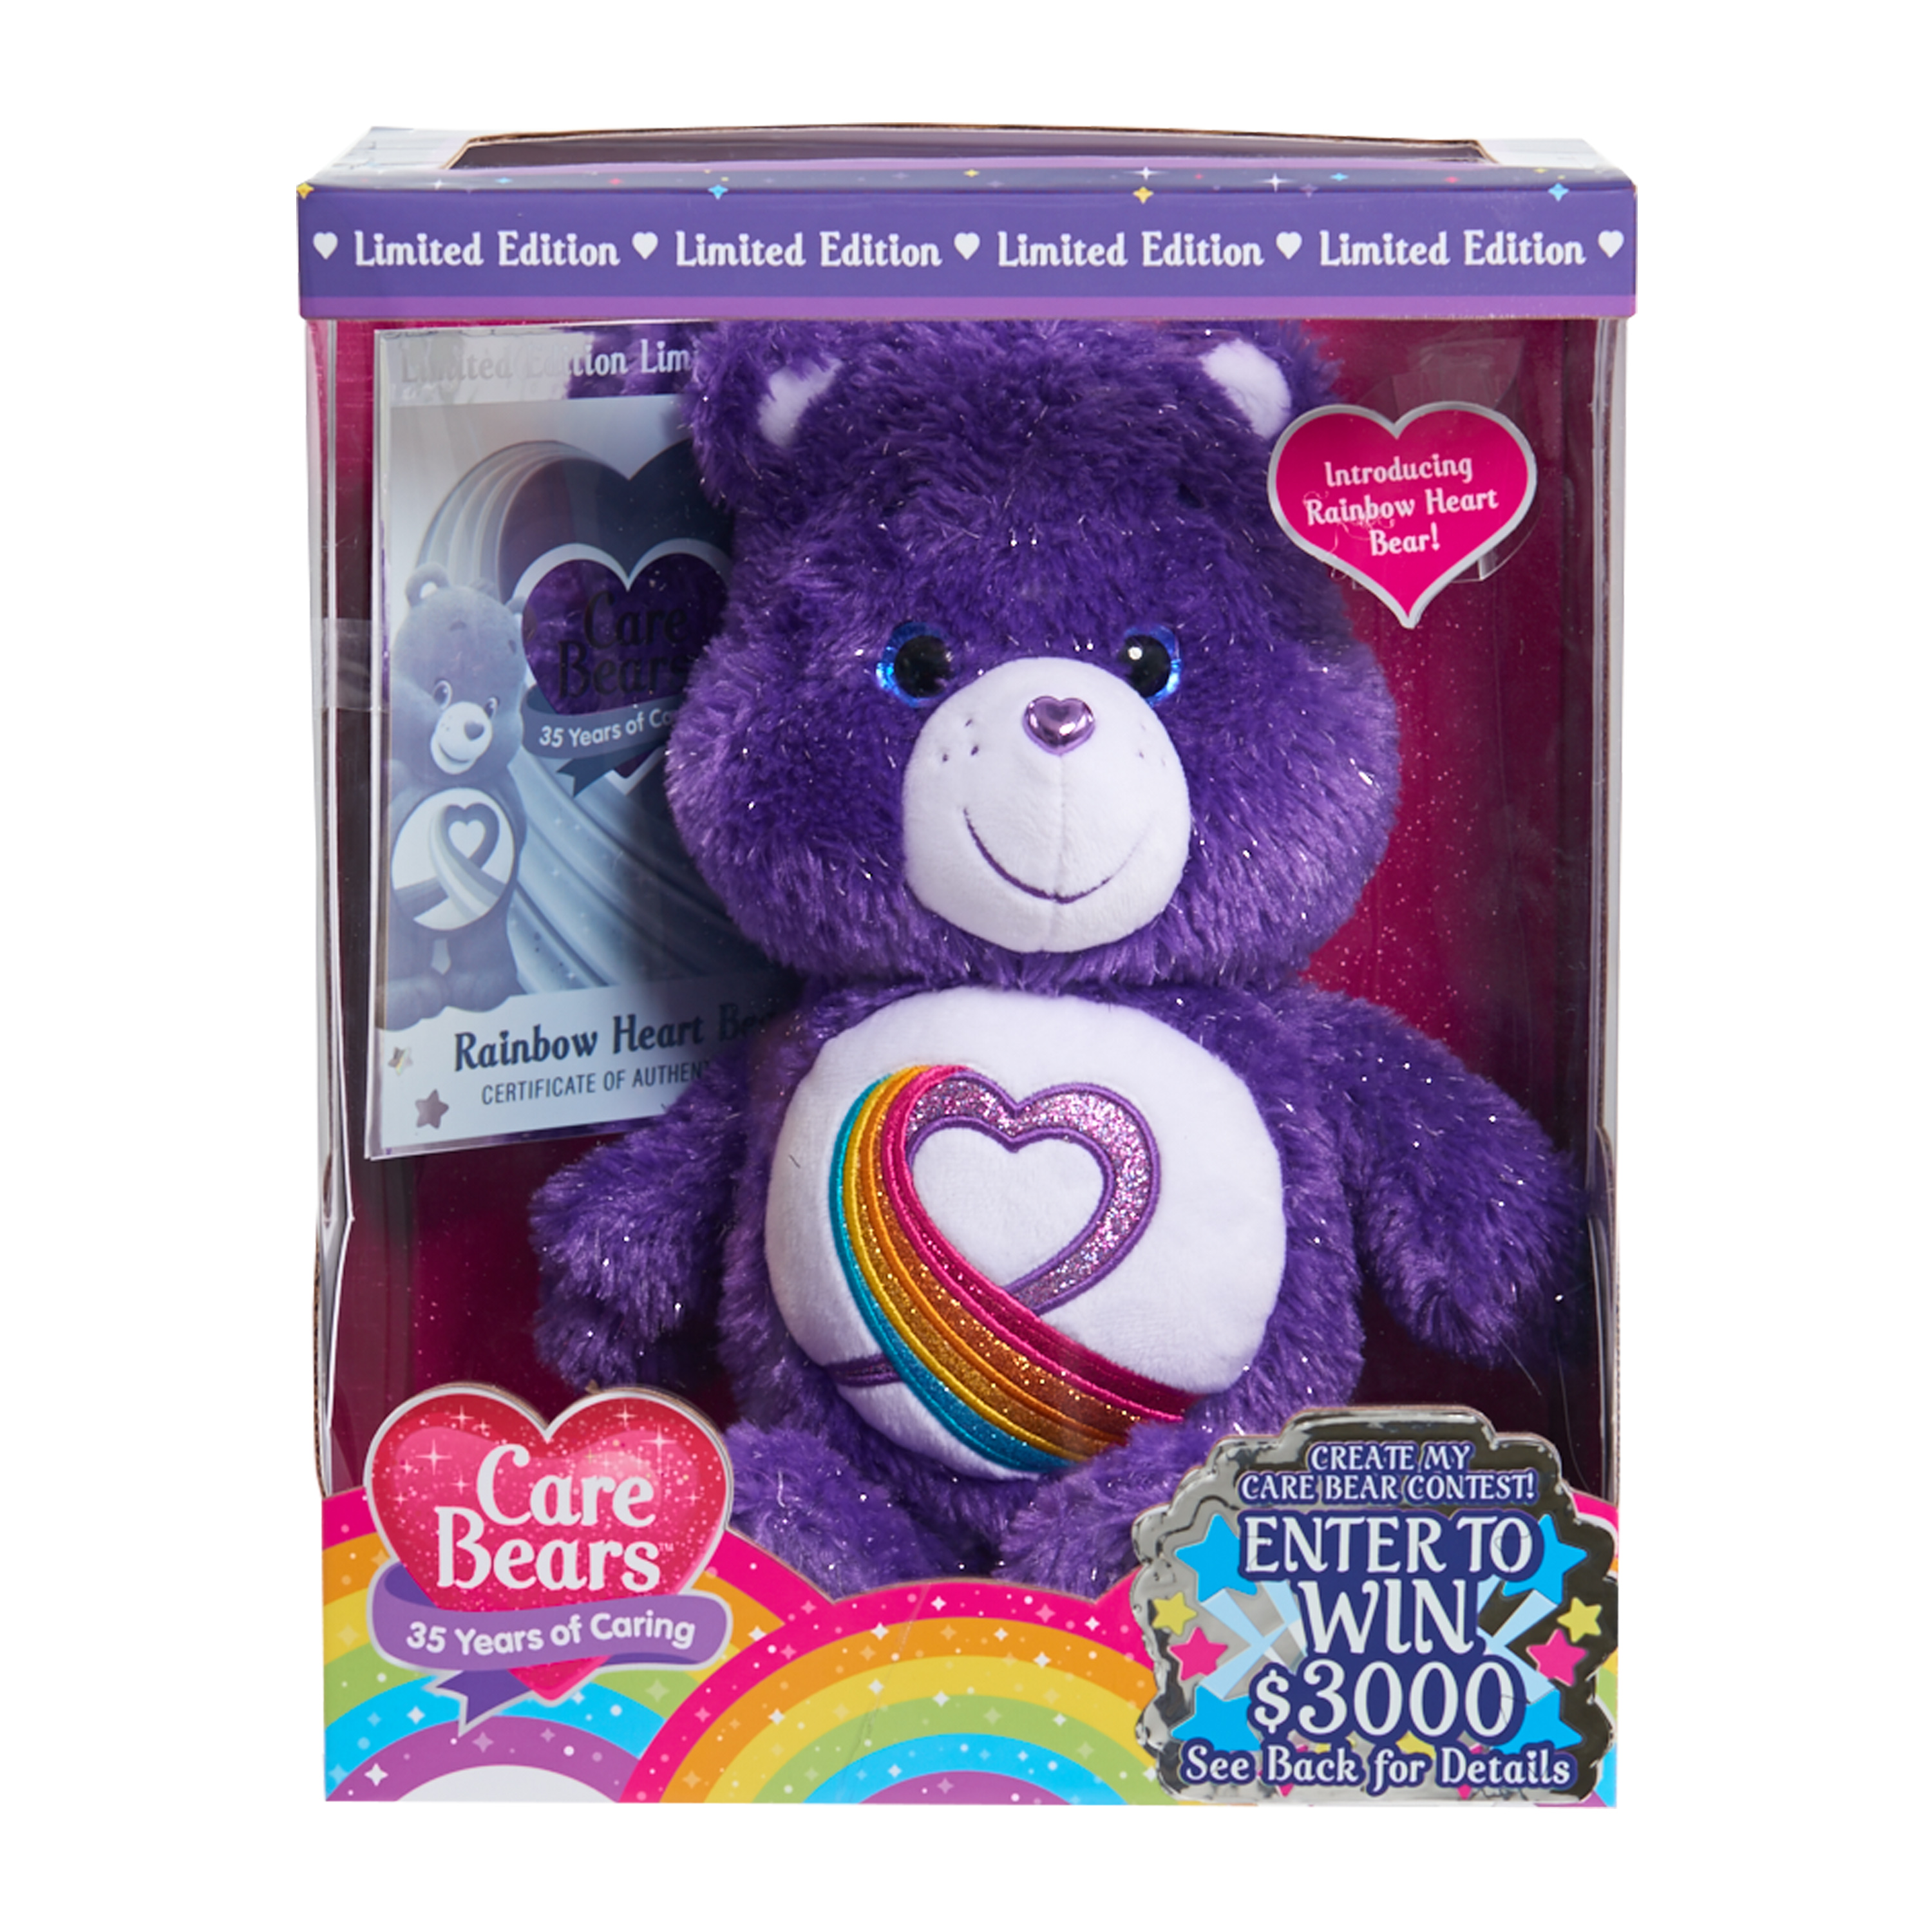 Care Bears Rainbow Heart 35th Anniversary Plush